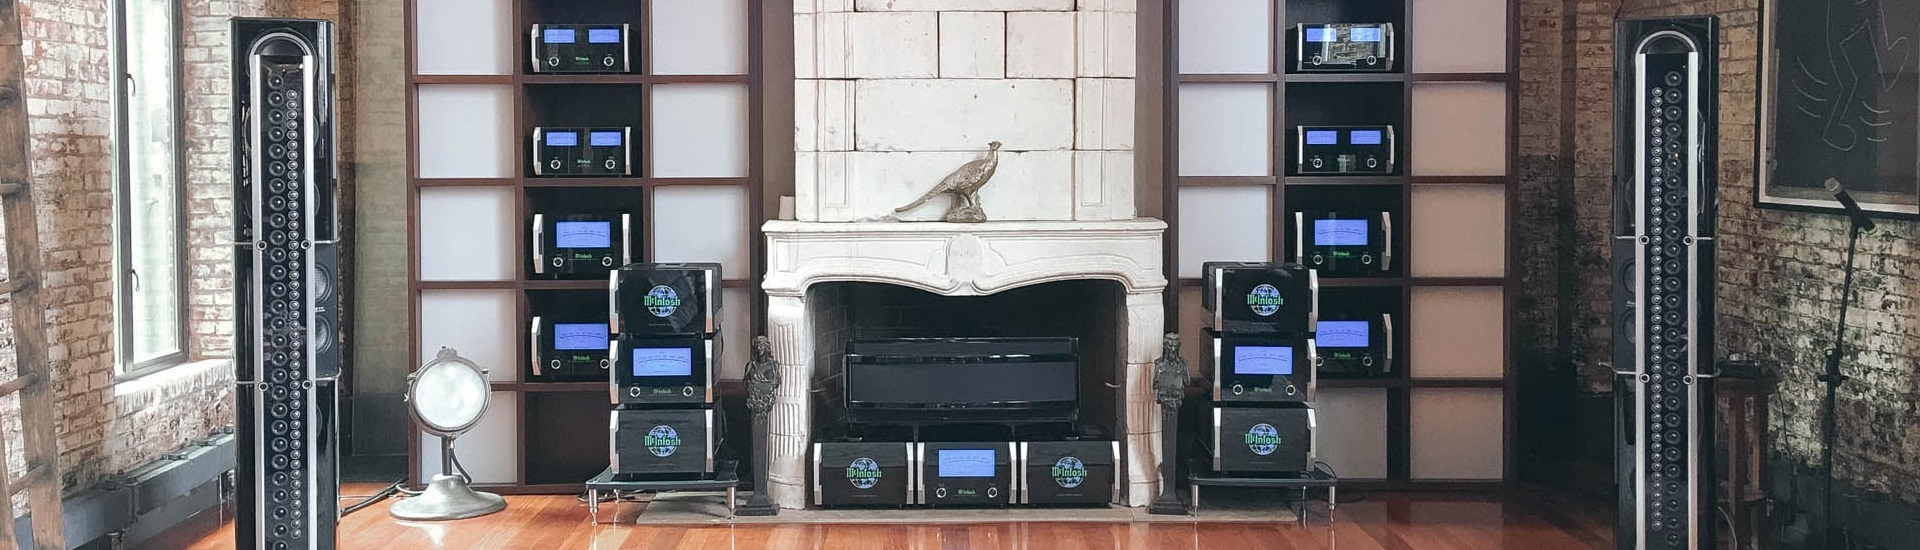 The McIntosh Clinic at World Wide Stereo